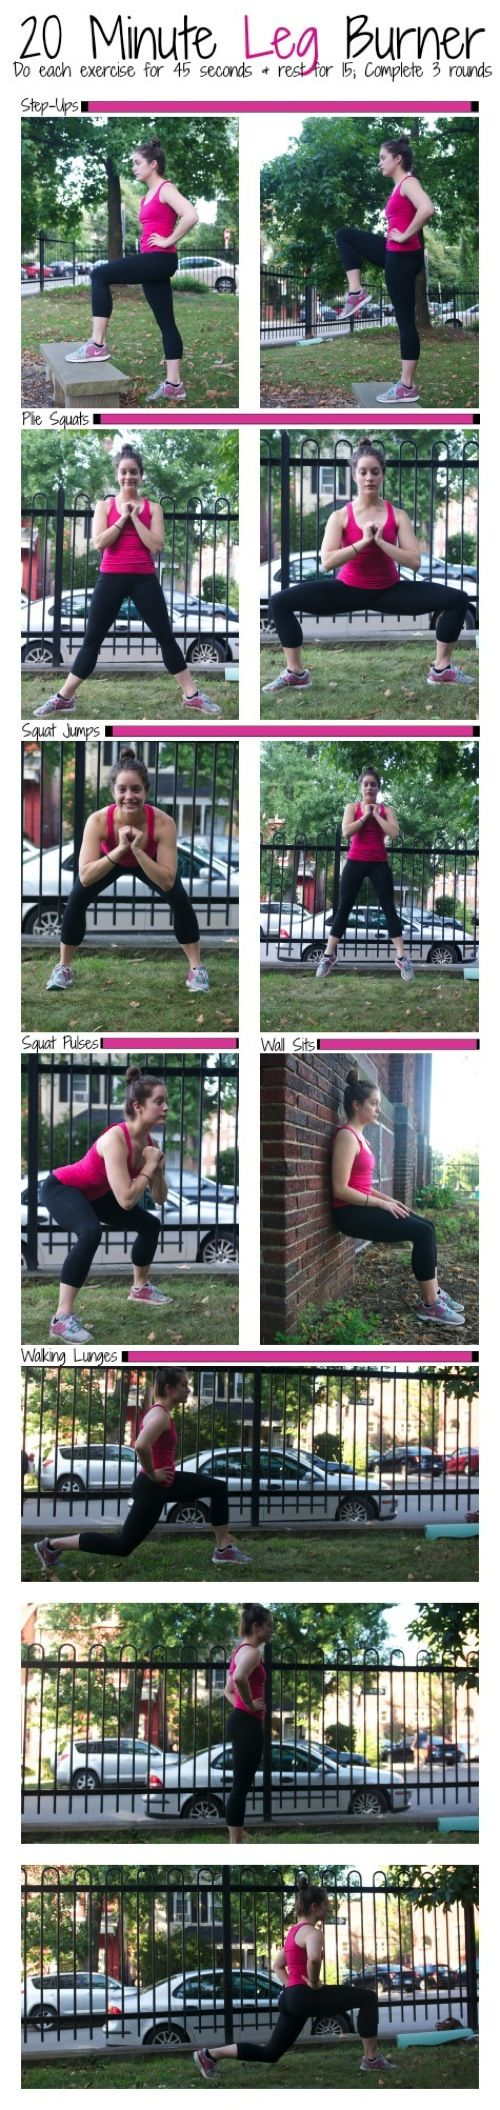 Looking for a quick leg workout? Give this 20 Minute Leg Workout a try--it will make your quads burn! (in a good way!)